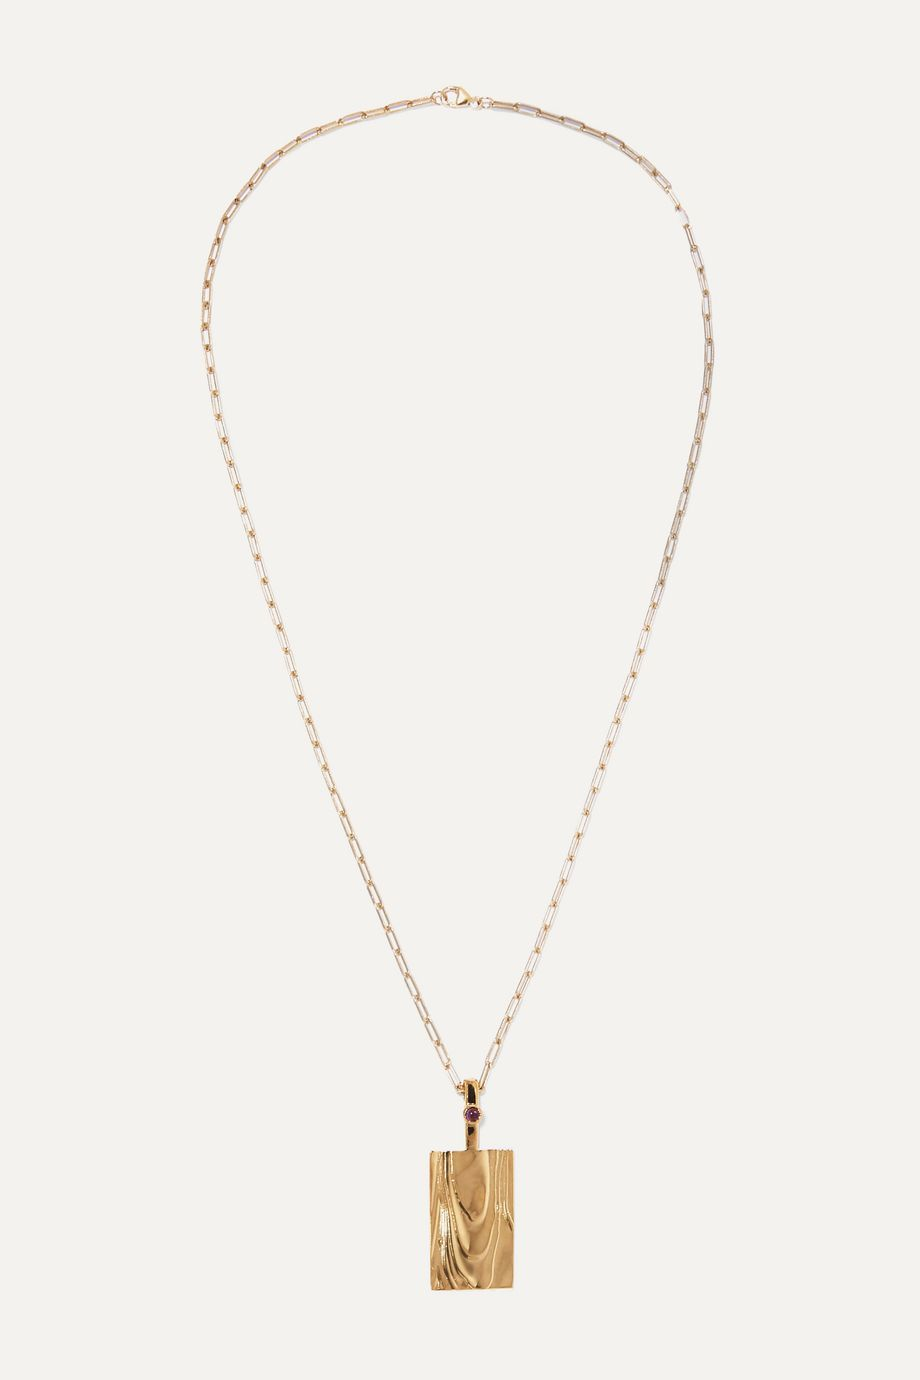 Leigh Miller + NET SUSTAIN Erte gold-plated amethyst necklace